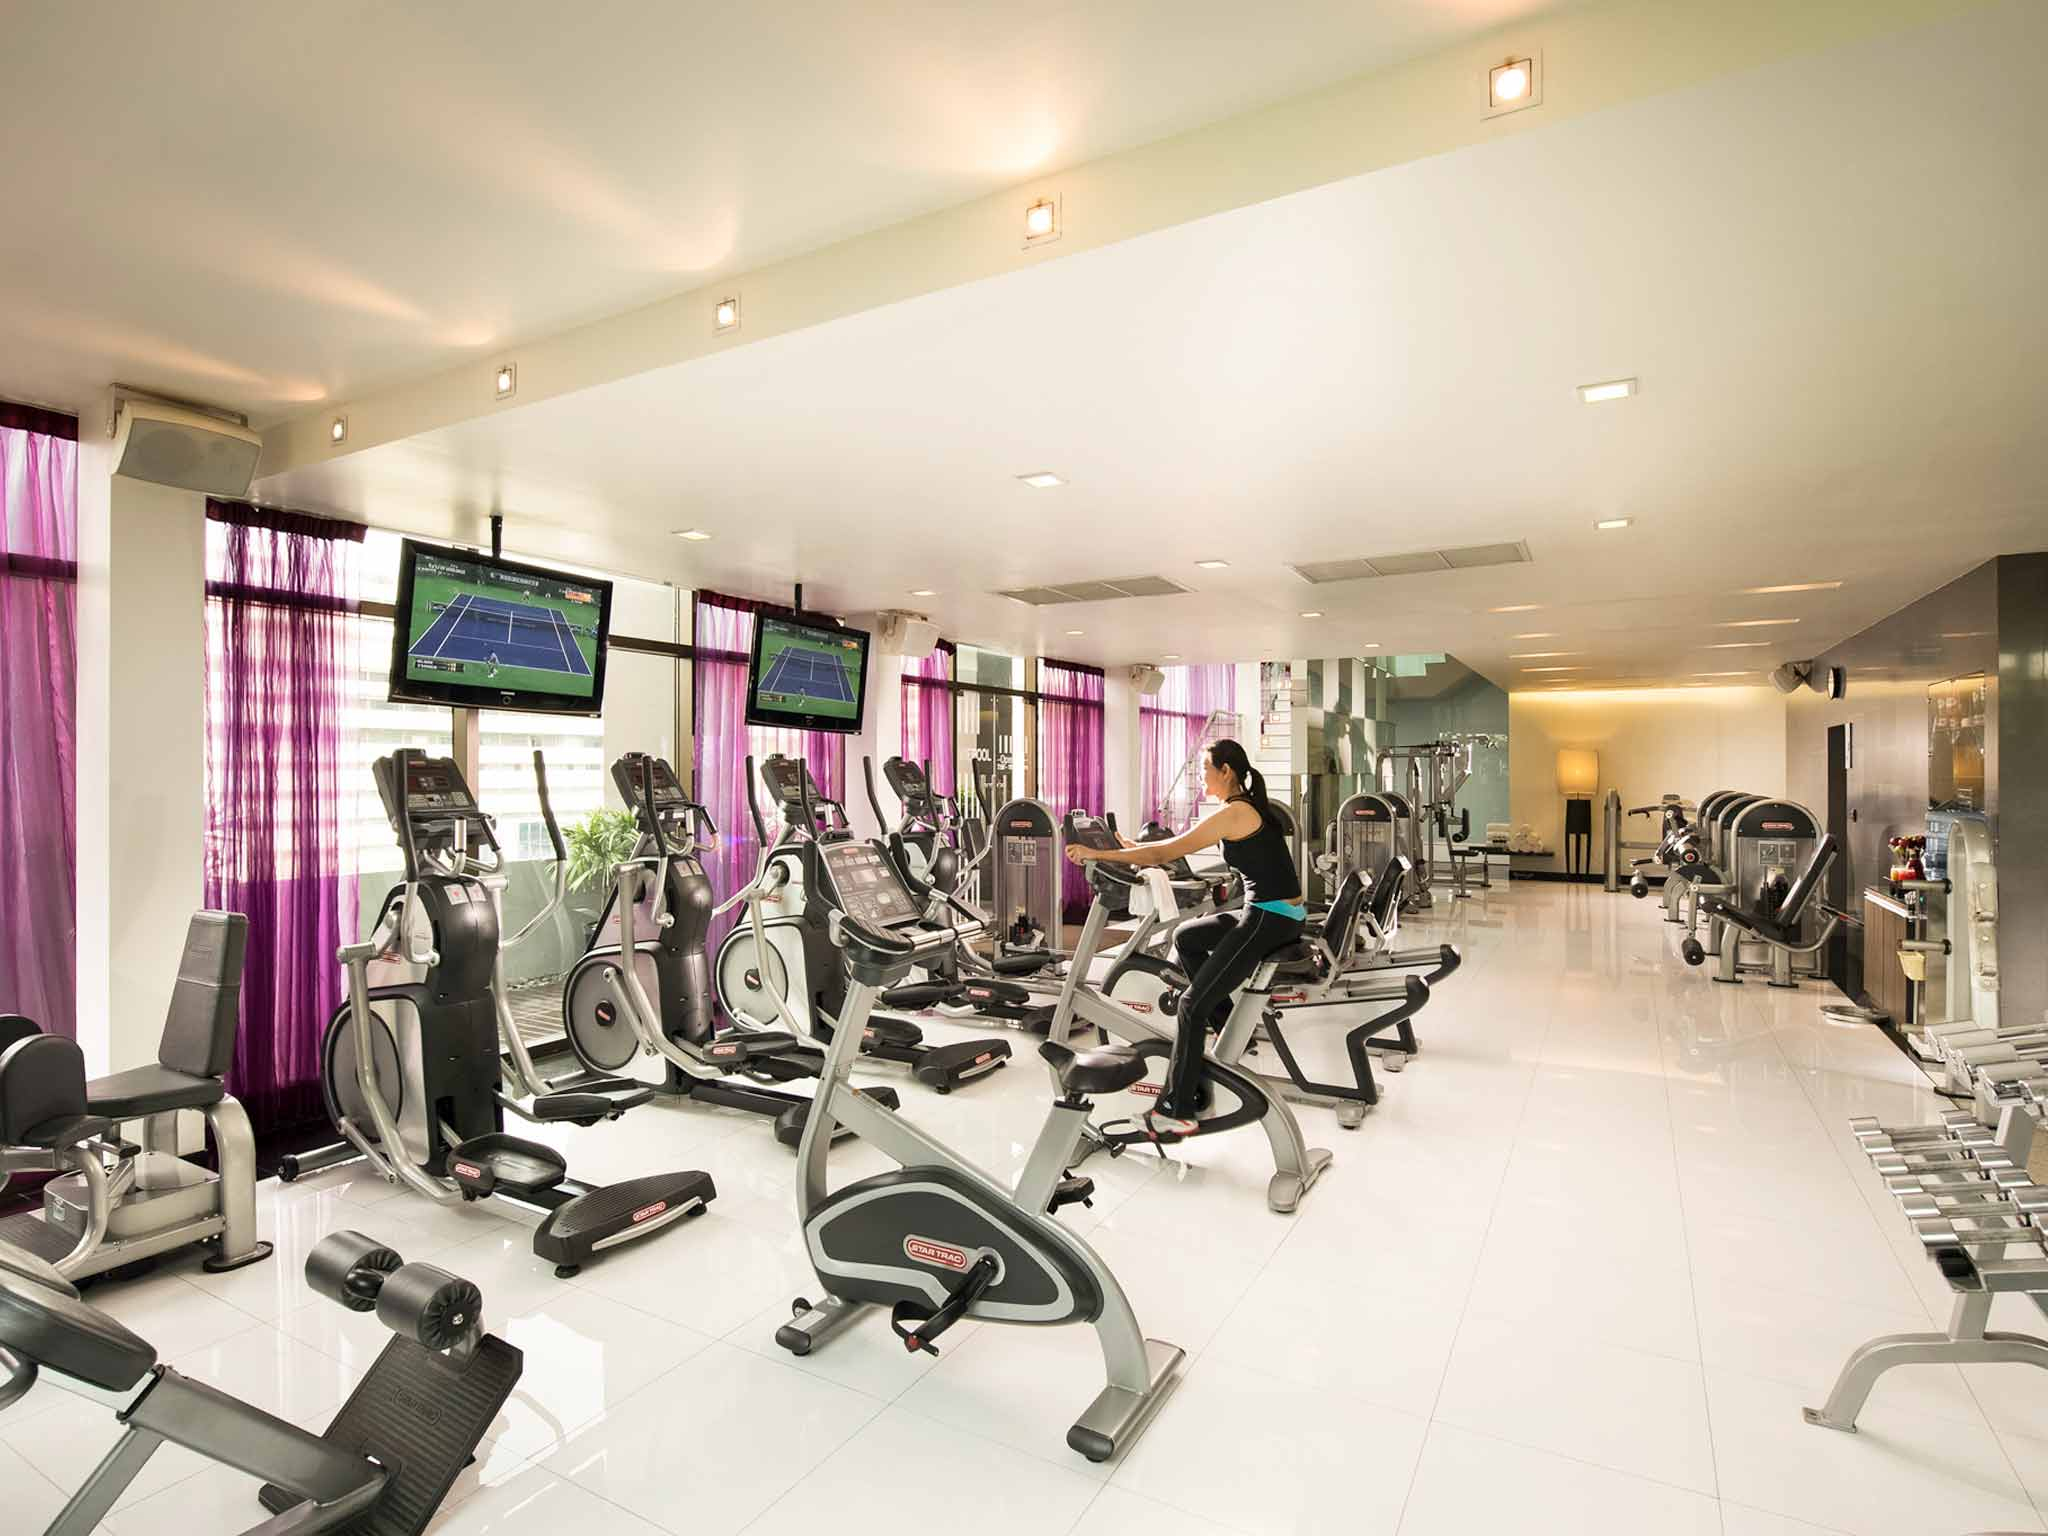 VIE Hotel Bangkok - MGallery Collection Centro de wellness